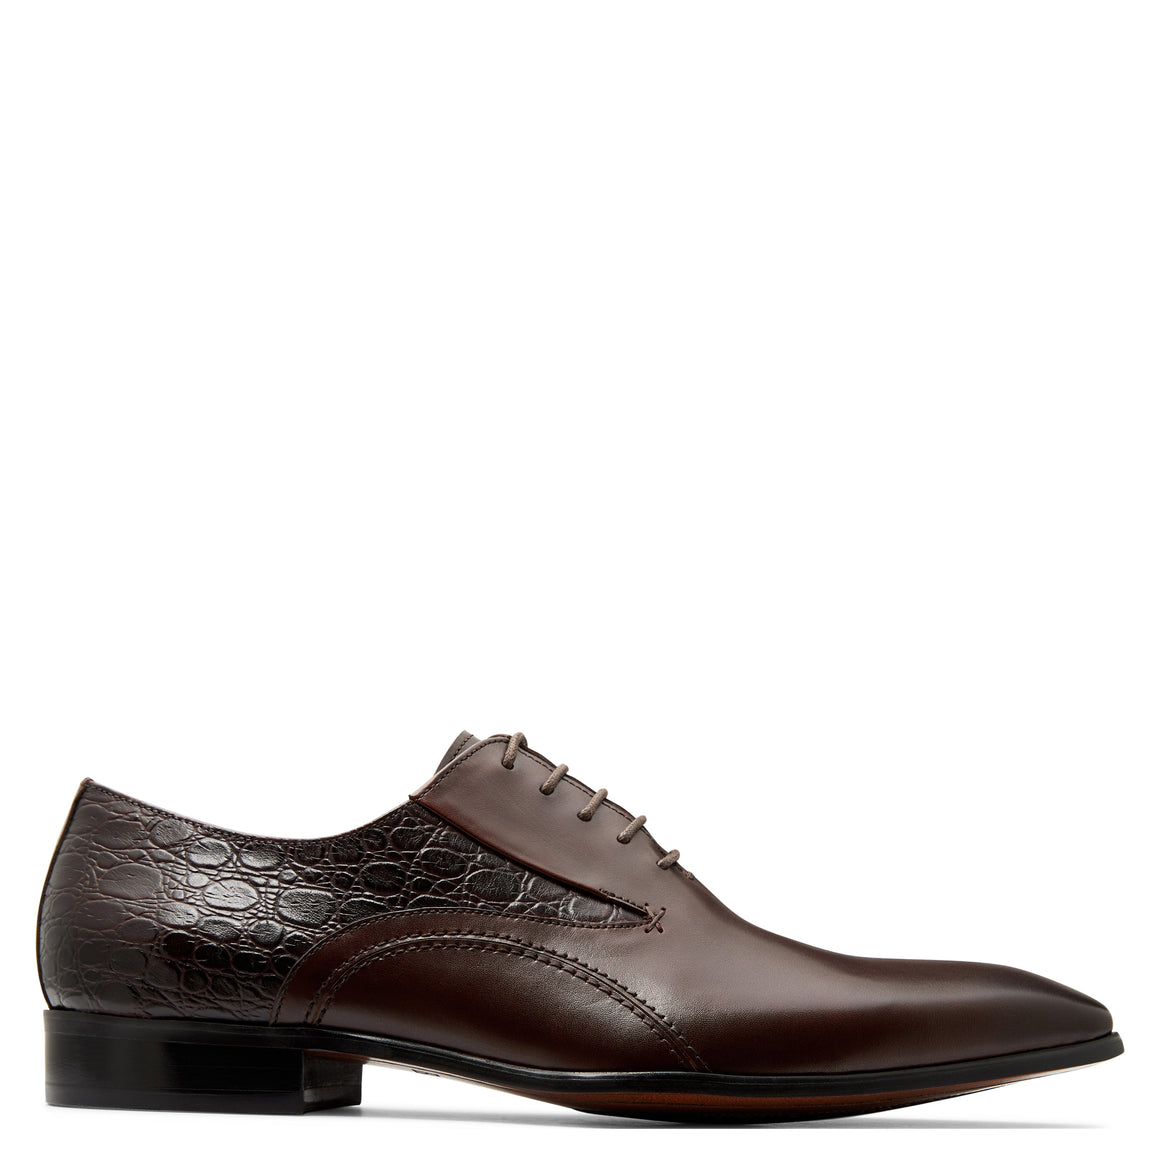 Arthur Brown Oxford Shoes